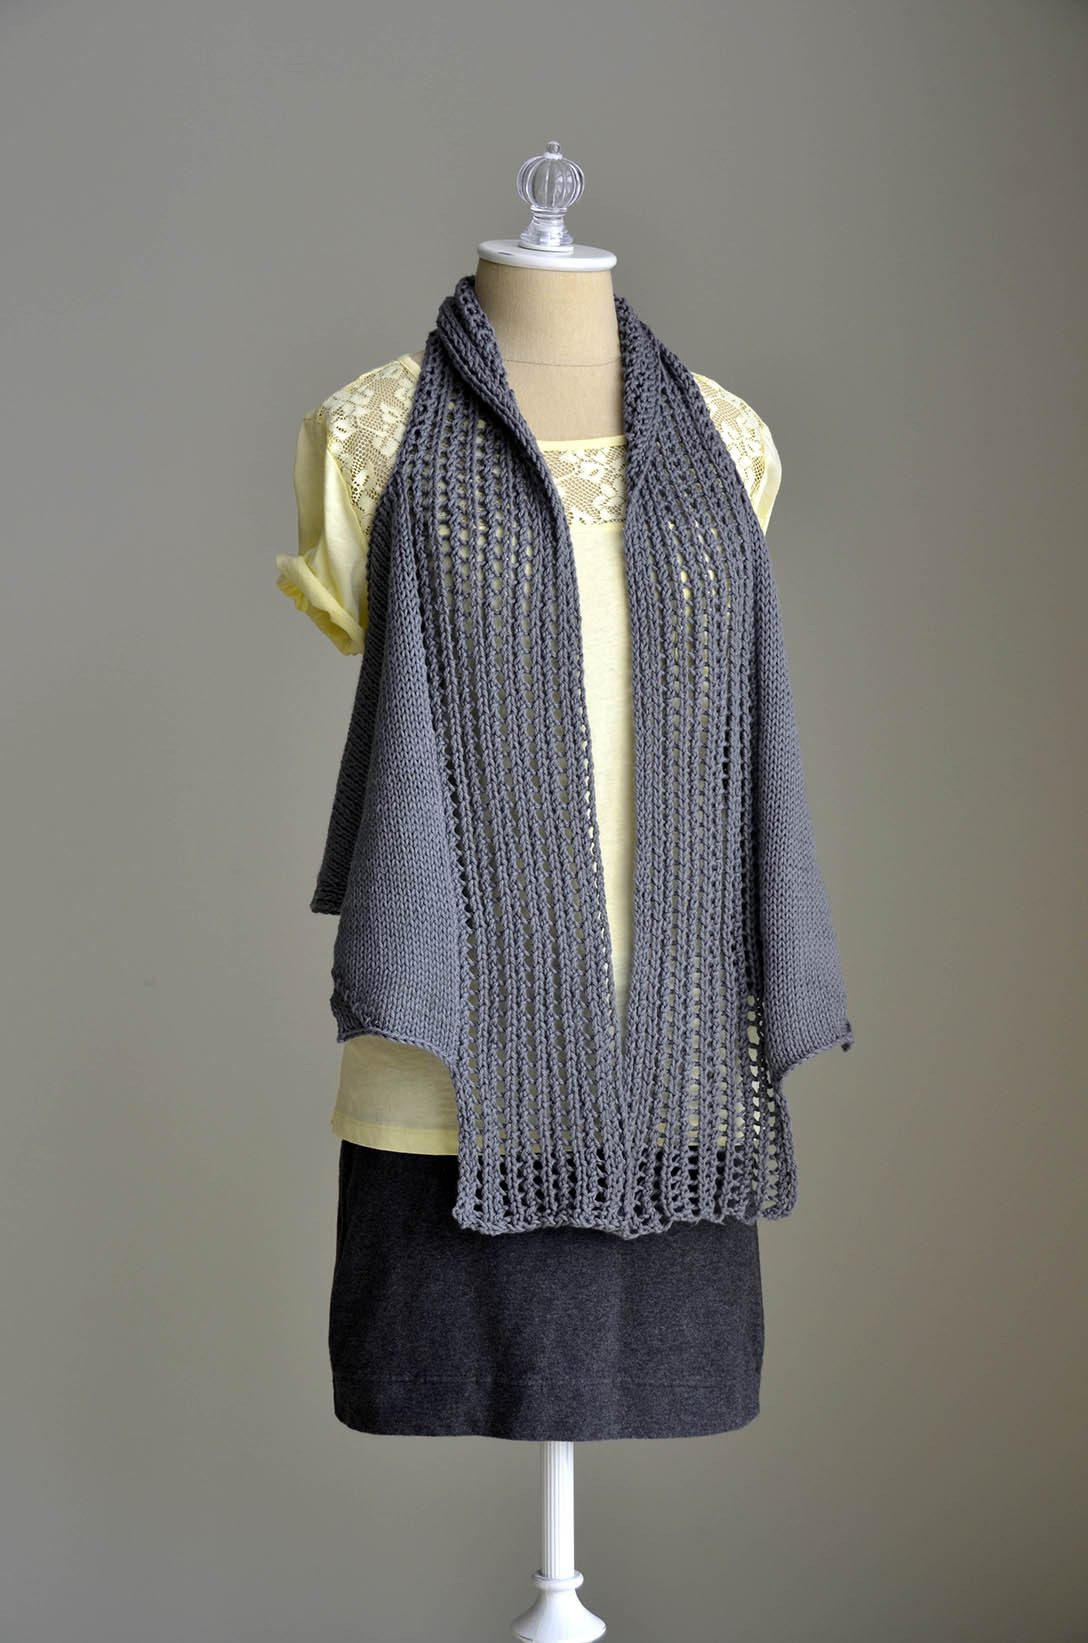 New Free Pattern Friday – Pathways Vest In Cotton Supreme Women's Knitted Vest Patterns Of Amazing 48 Ideas Women's Knitted Vest Patterns